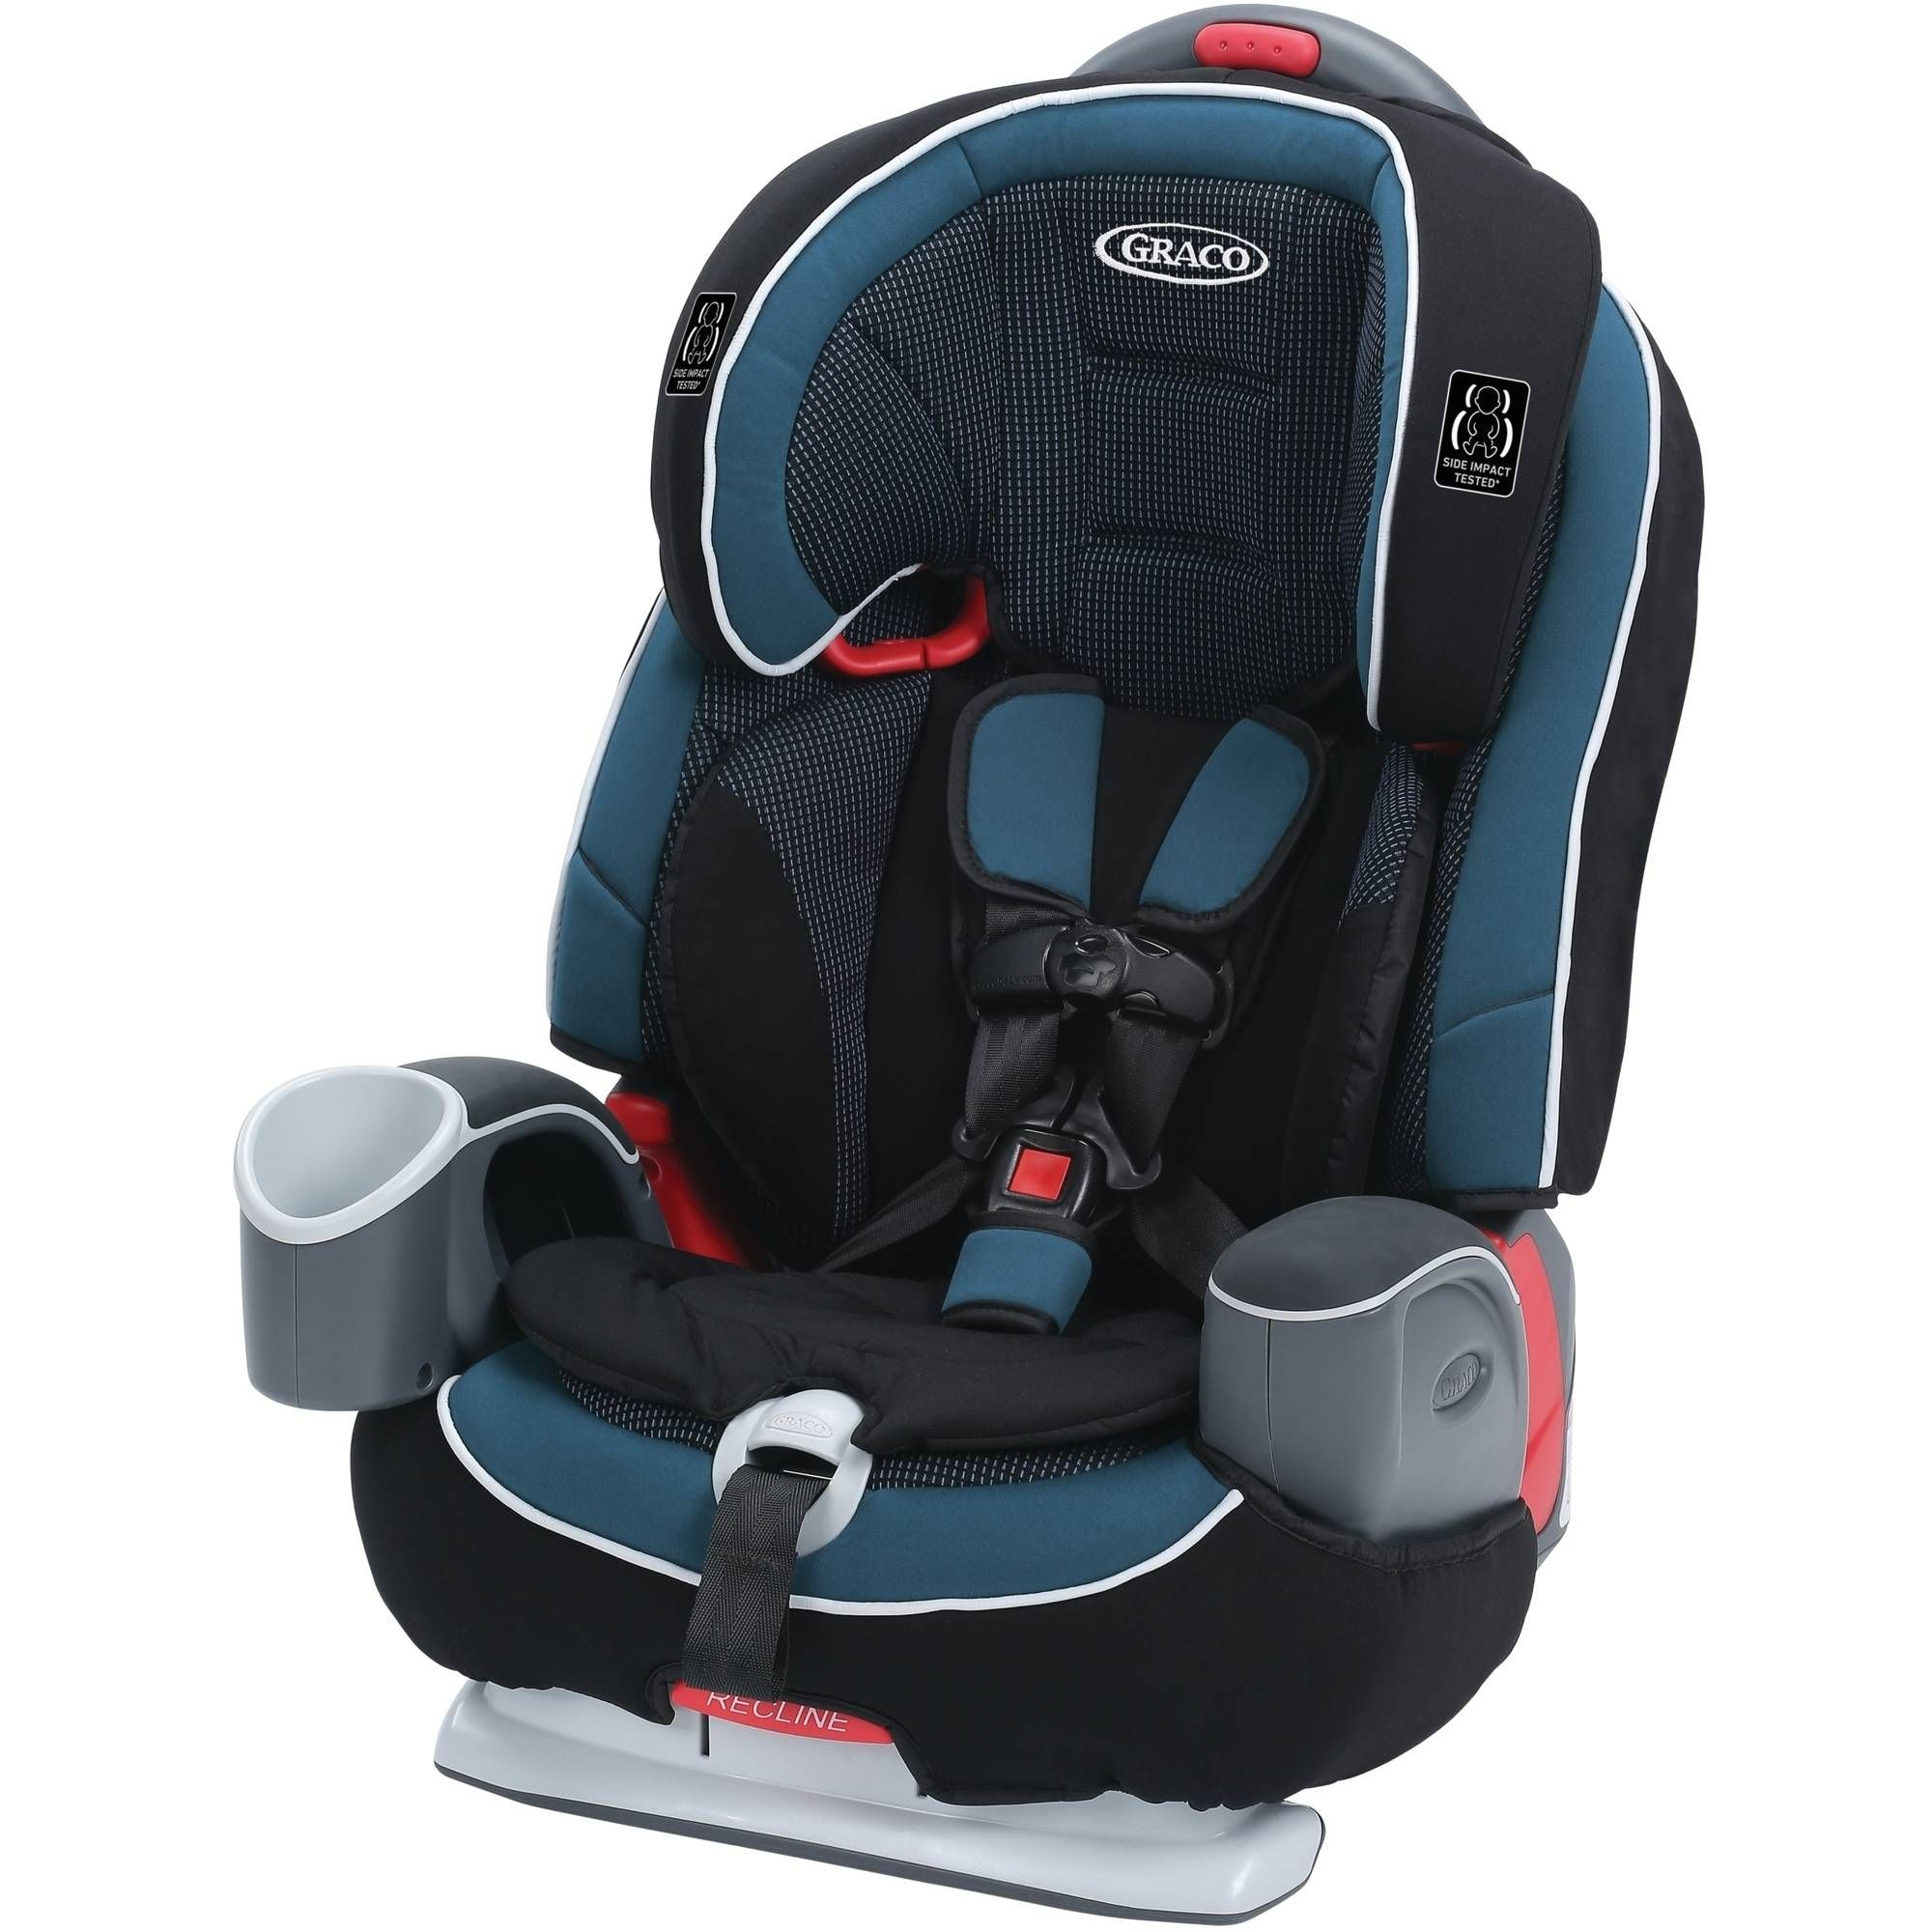 Graco Nautilus 65 LX 3in1 Convertible Harness Booster